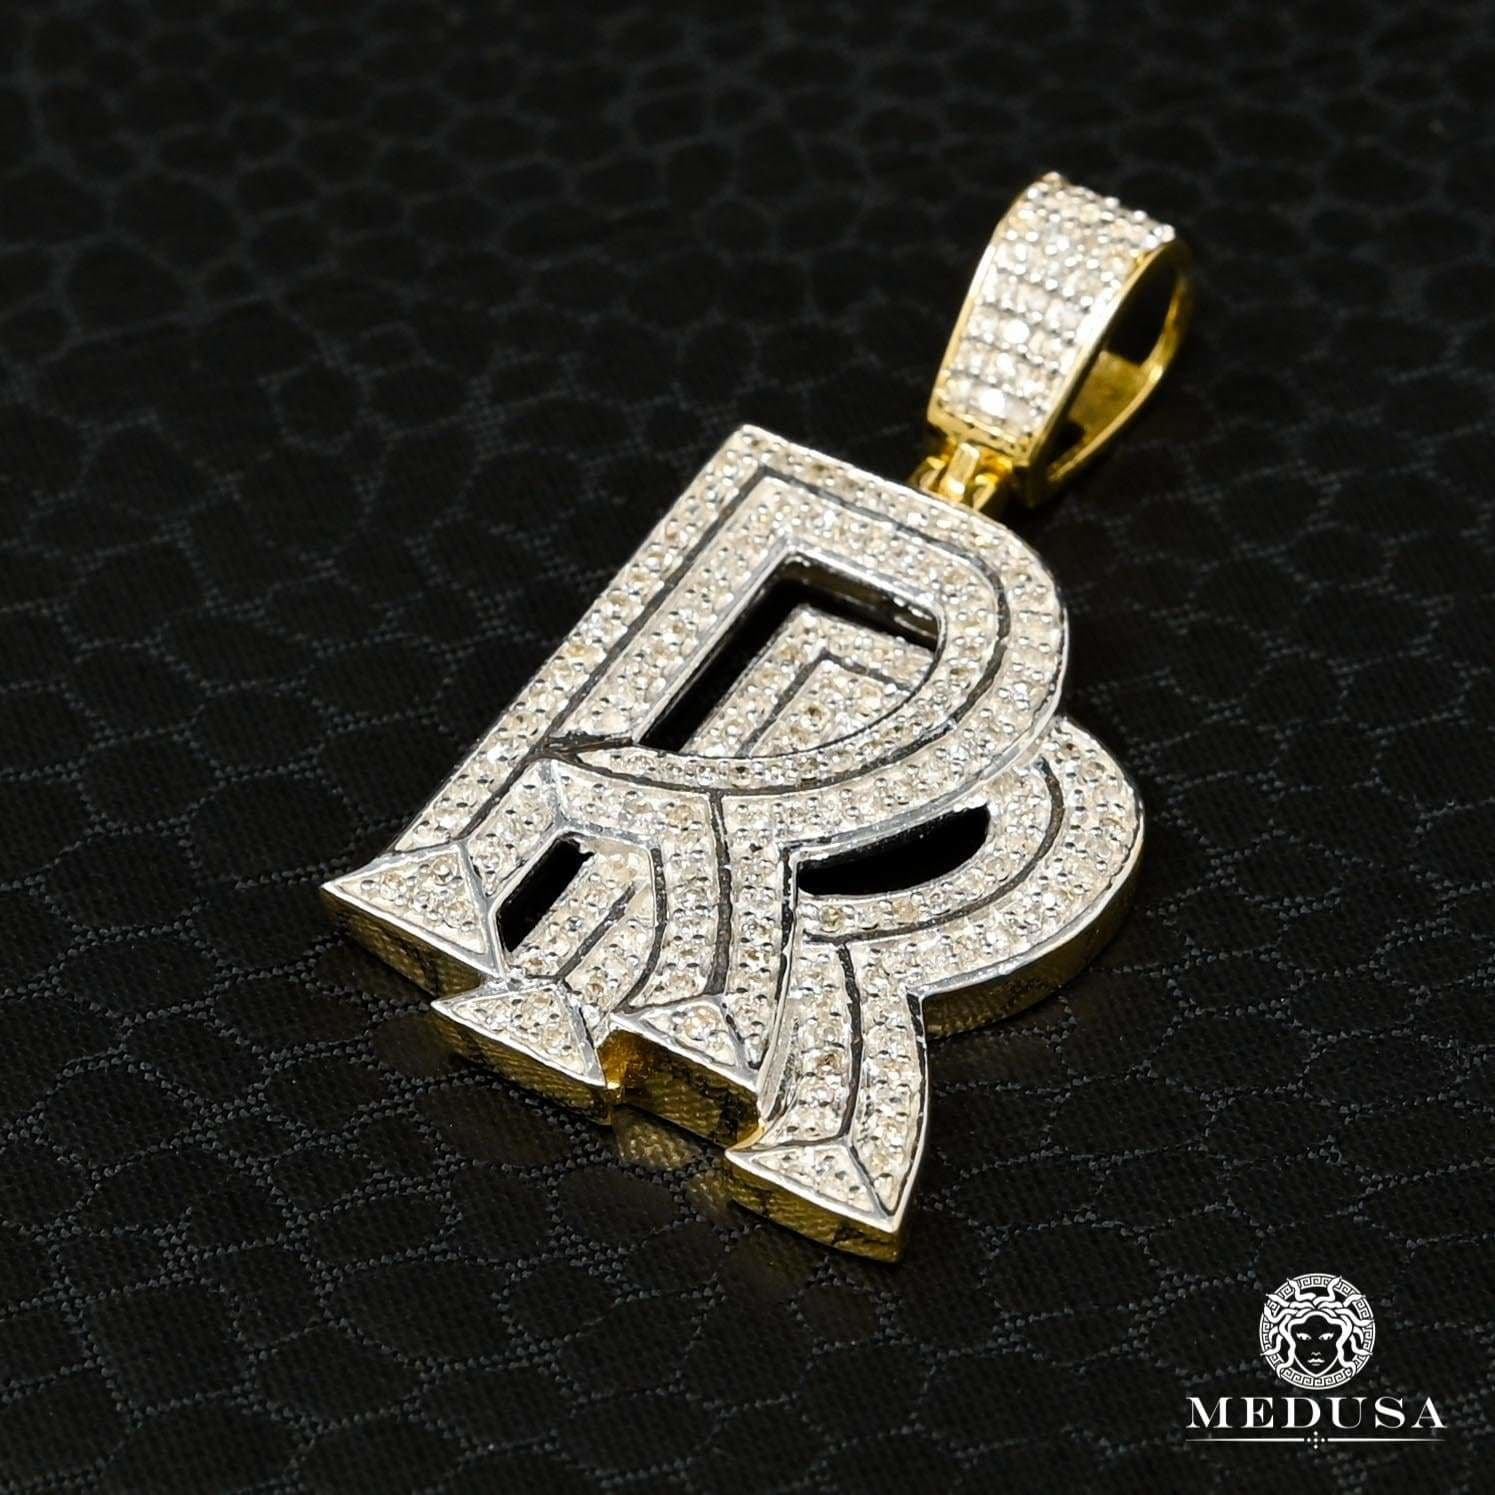 Pendentif à Diamants en Or 10K | Pendentif Divers RollsRoyce D1 - Diamant Or 2 Tons